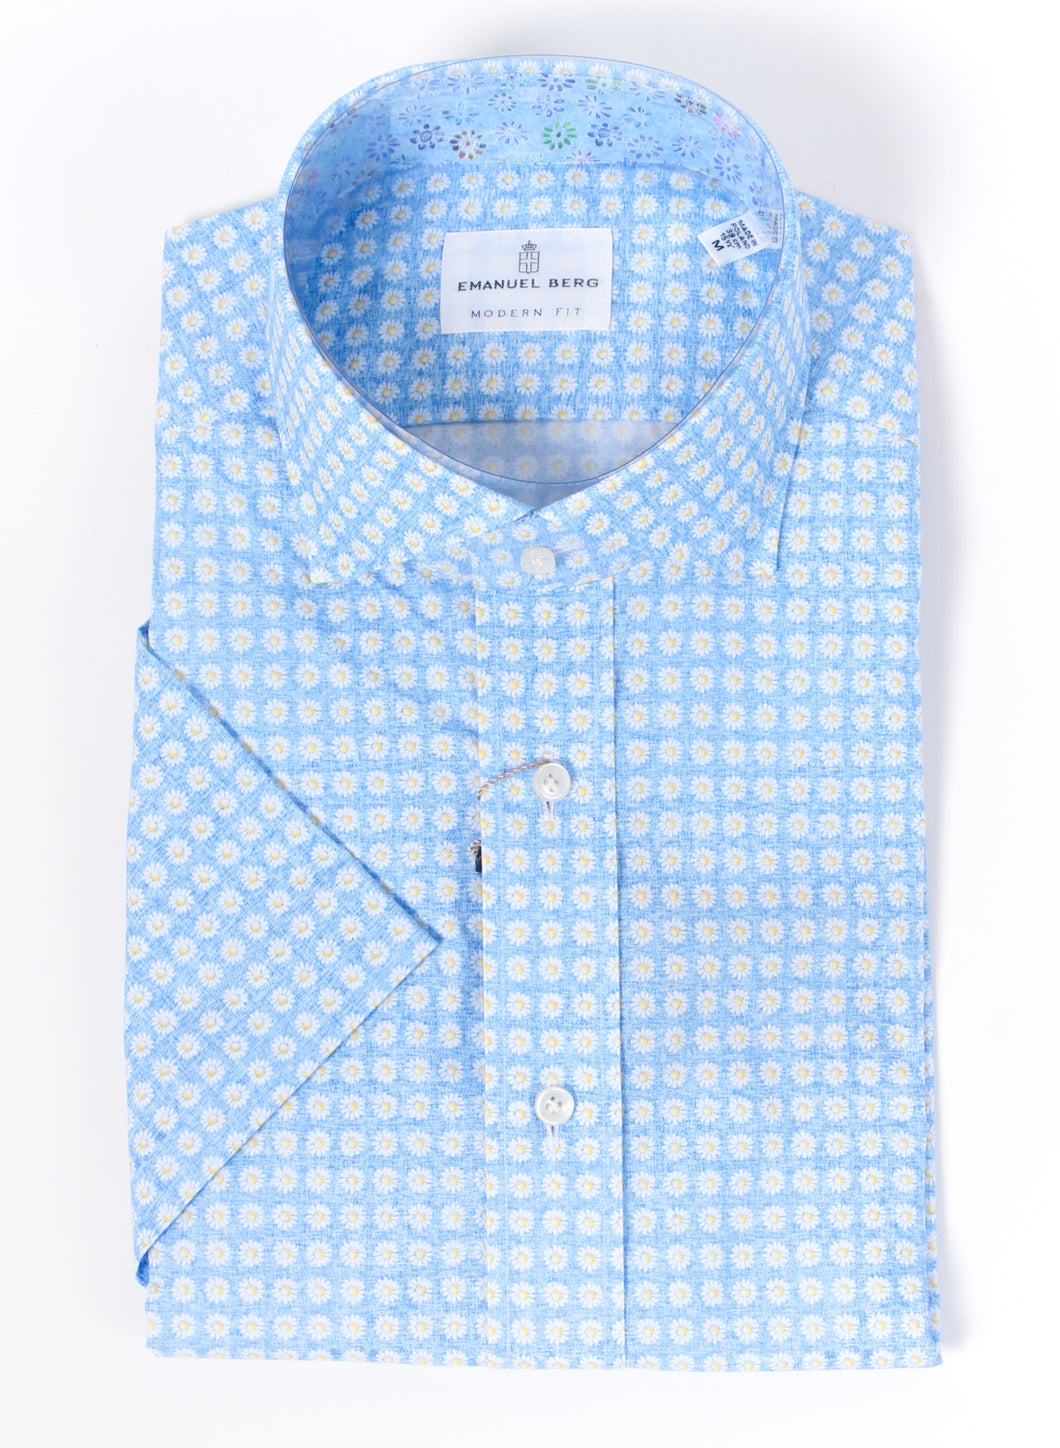 Emanuel Berg Short Sleeve Sport Short: Blue Flowers